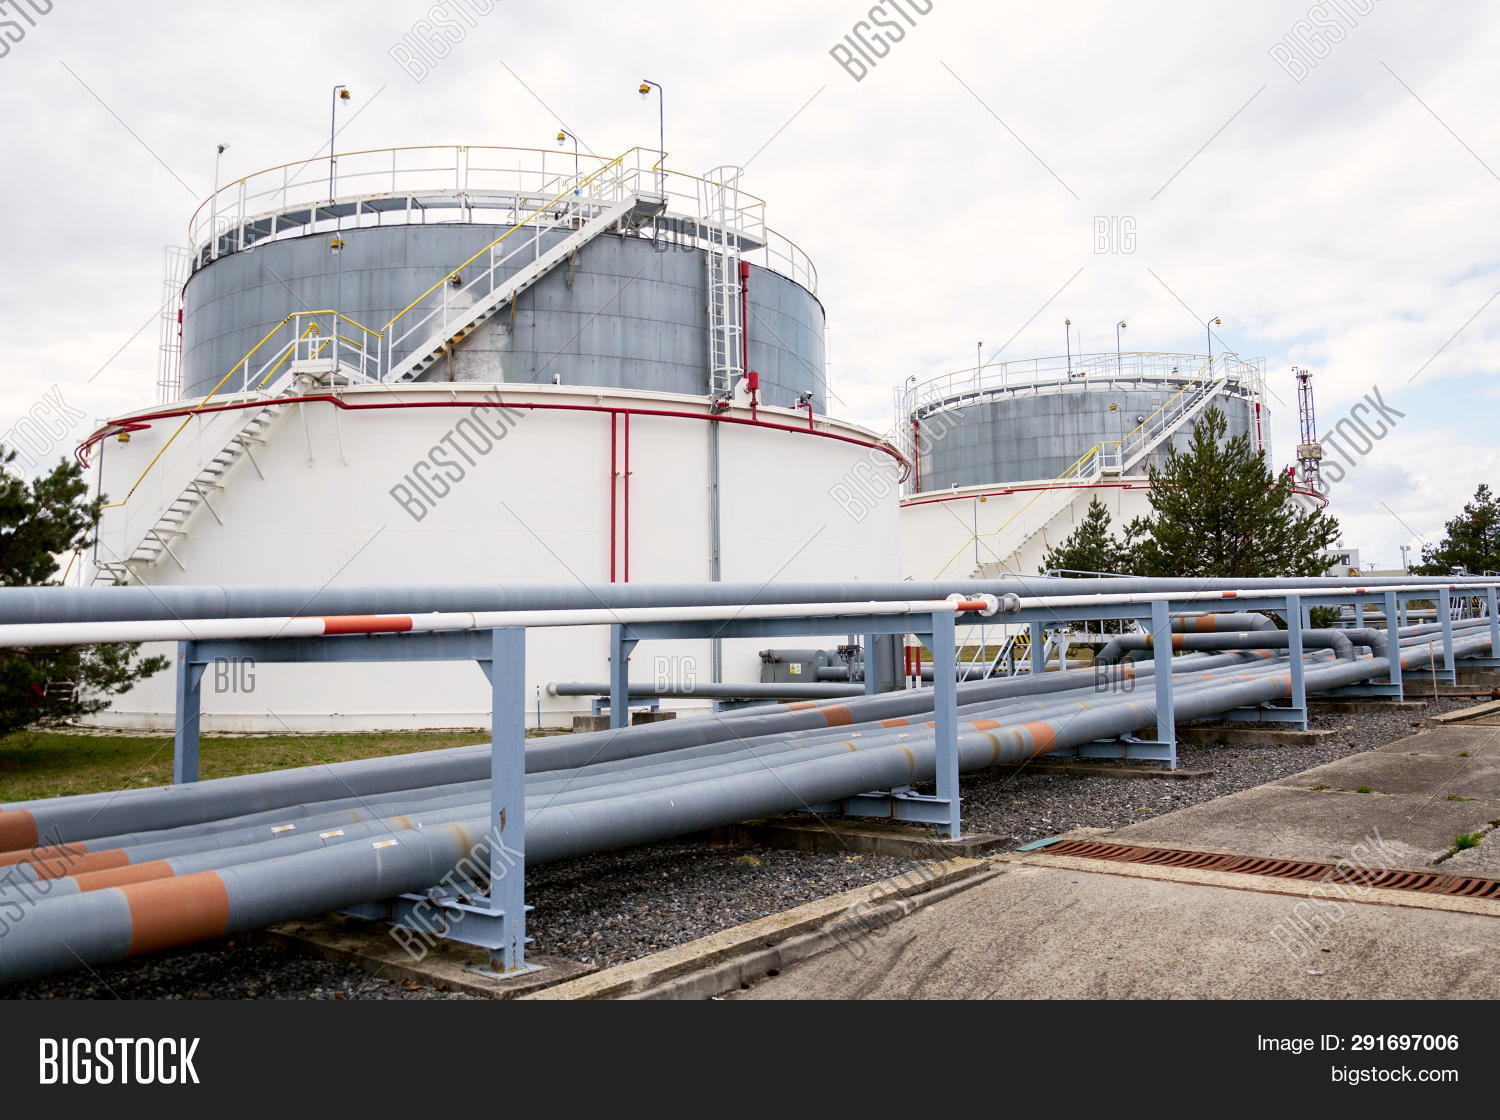 Liquid Fluid Gas Oil Image & Photo (Free Trial) | Bigstock